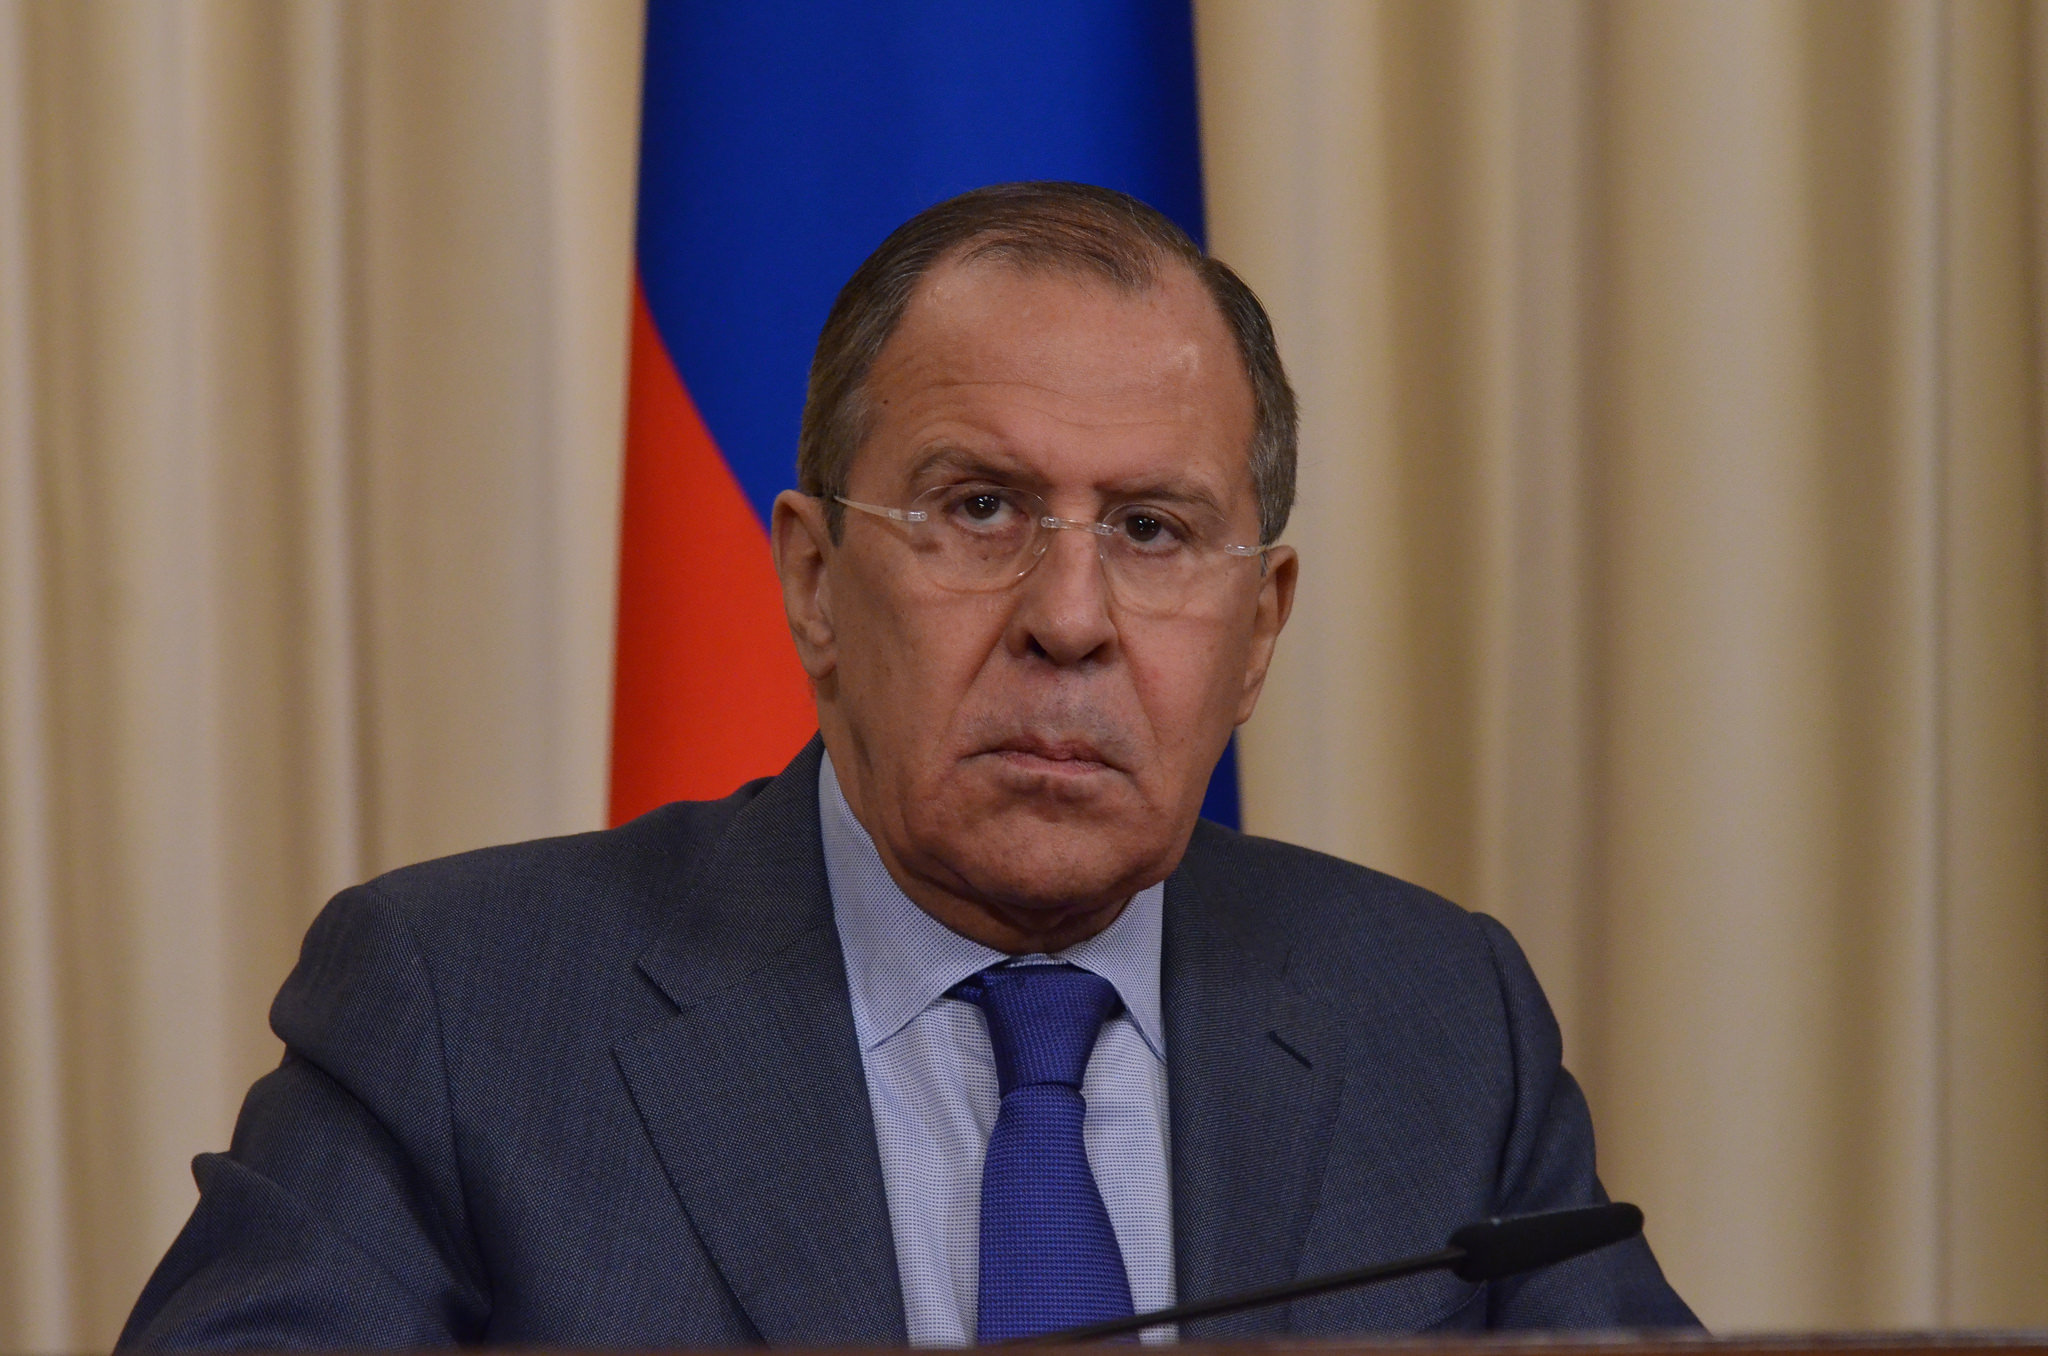 Russia's Foreign Minister Sergei Lavrov said coordination between the Russian and US military will begin taking shape as soon as conditions allow.